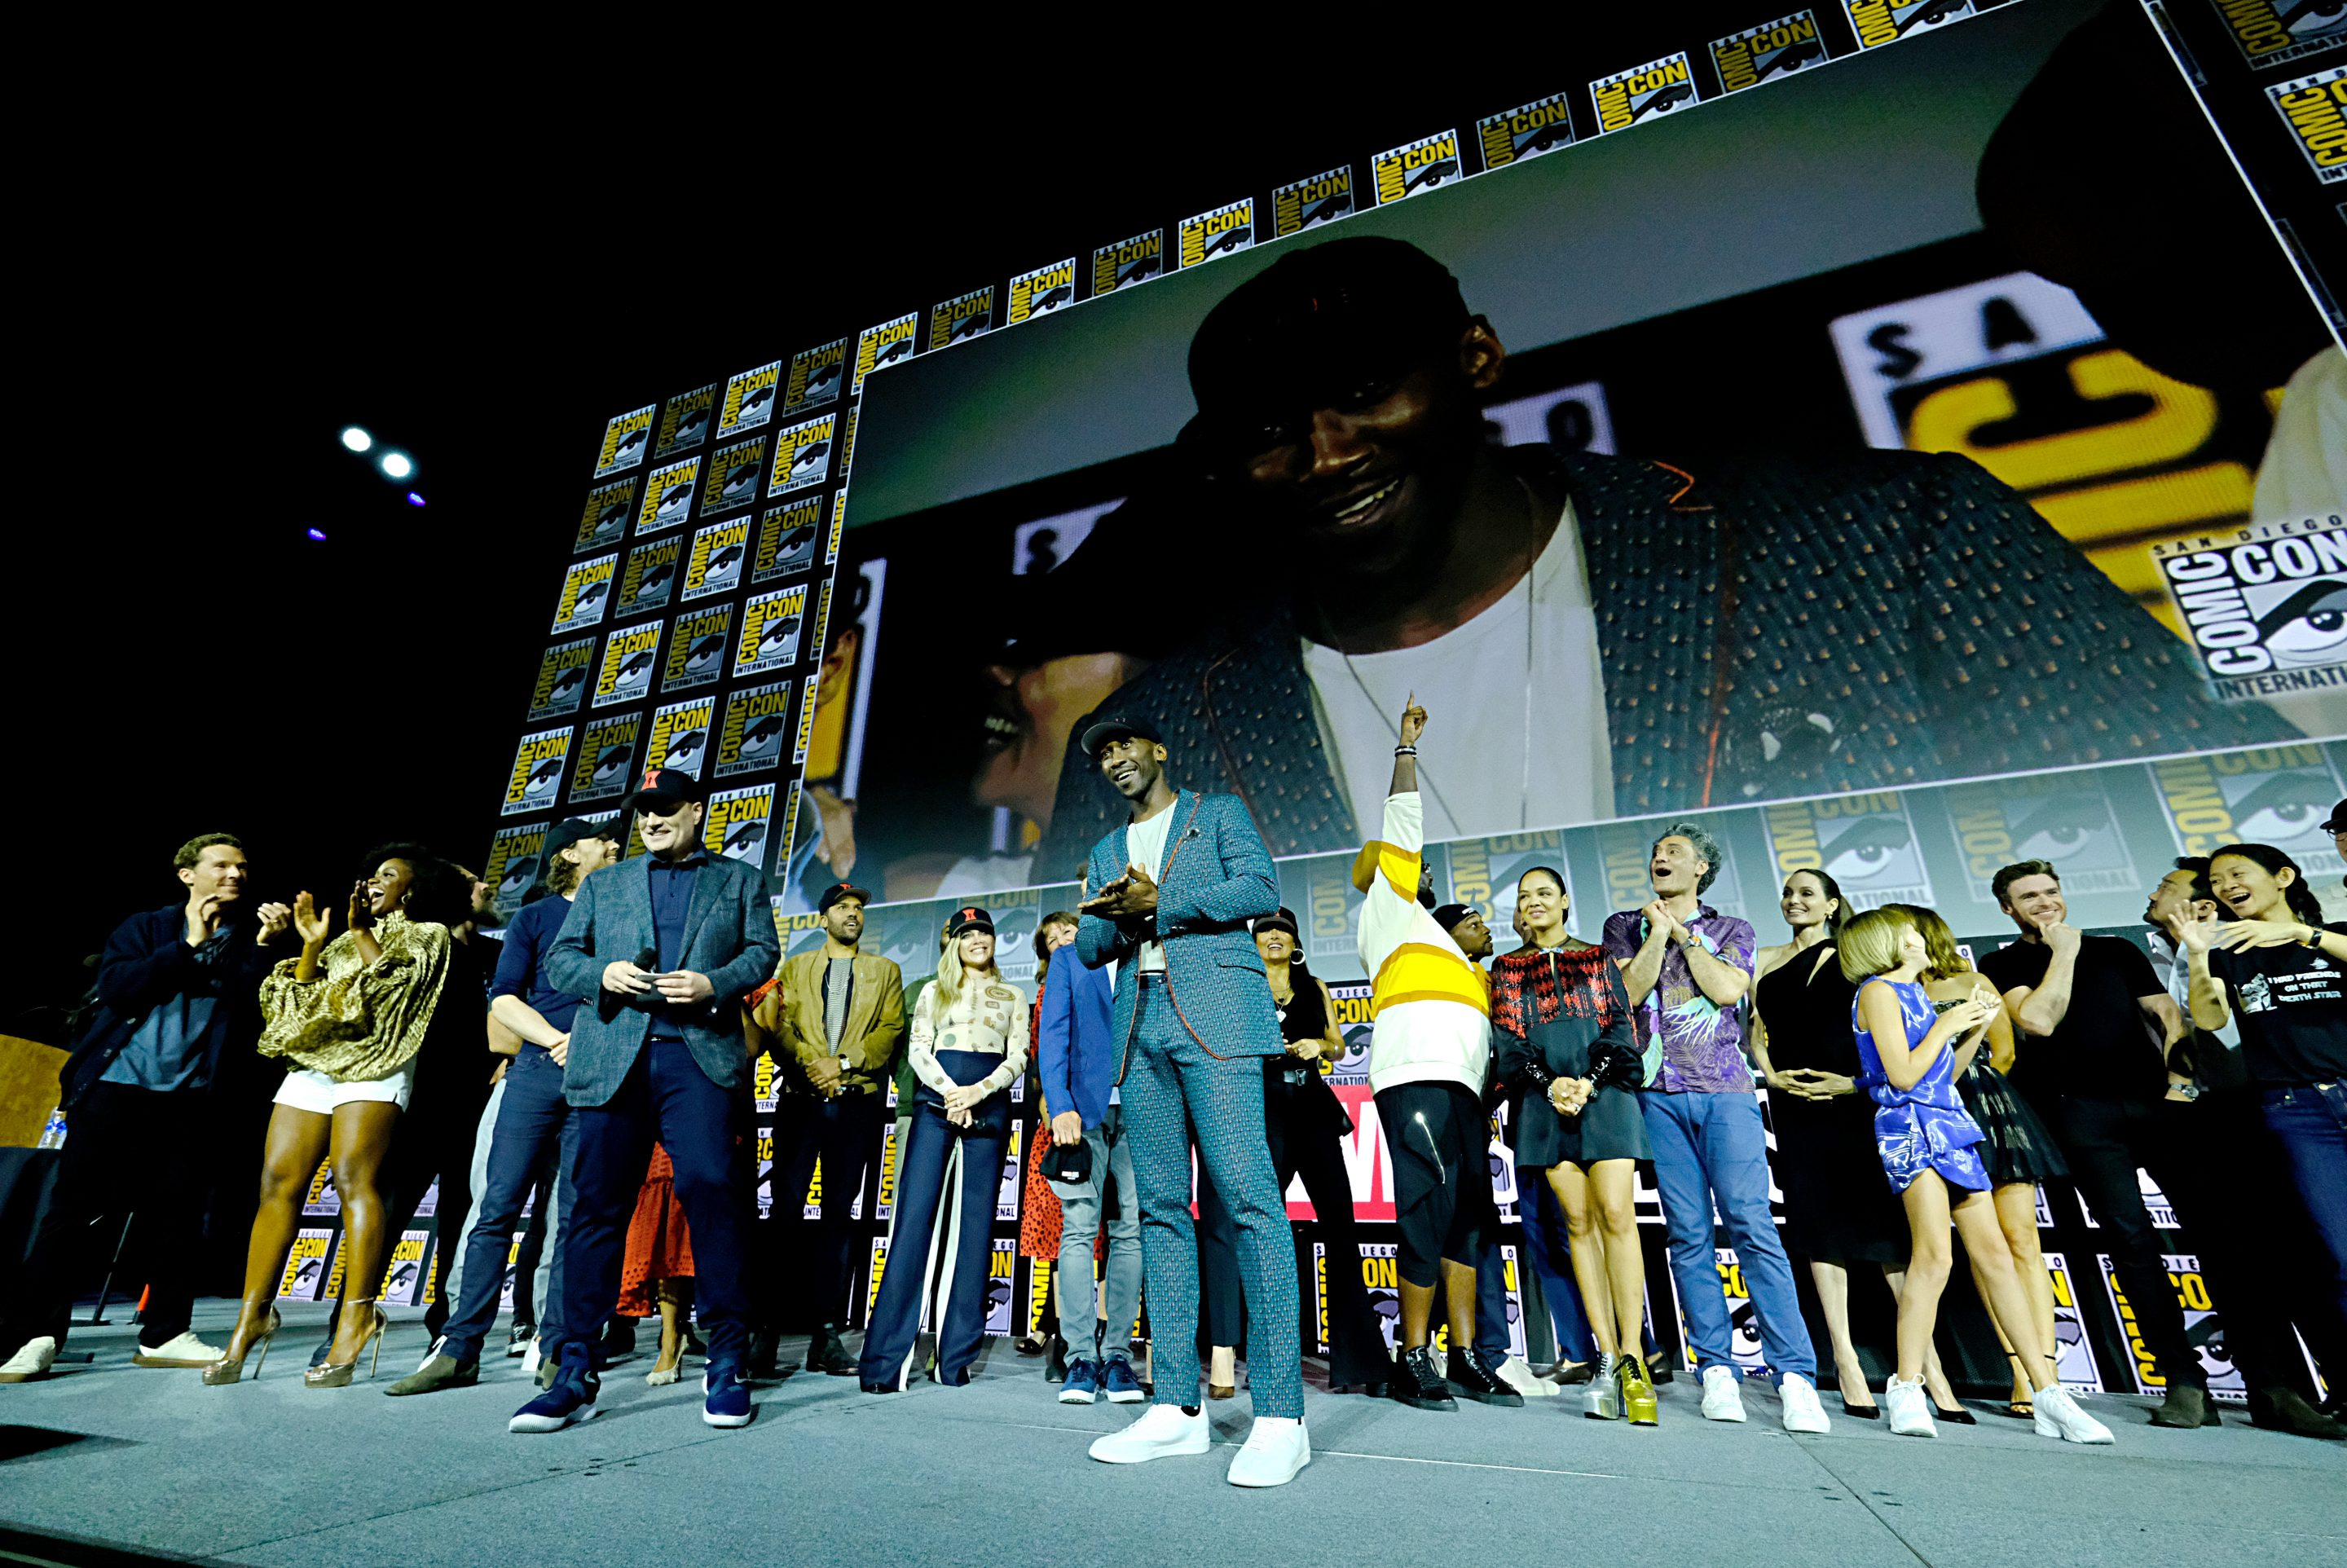 Mahershala Ali at the San Diego Comic-Con International on July 20, 2019.